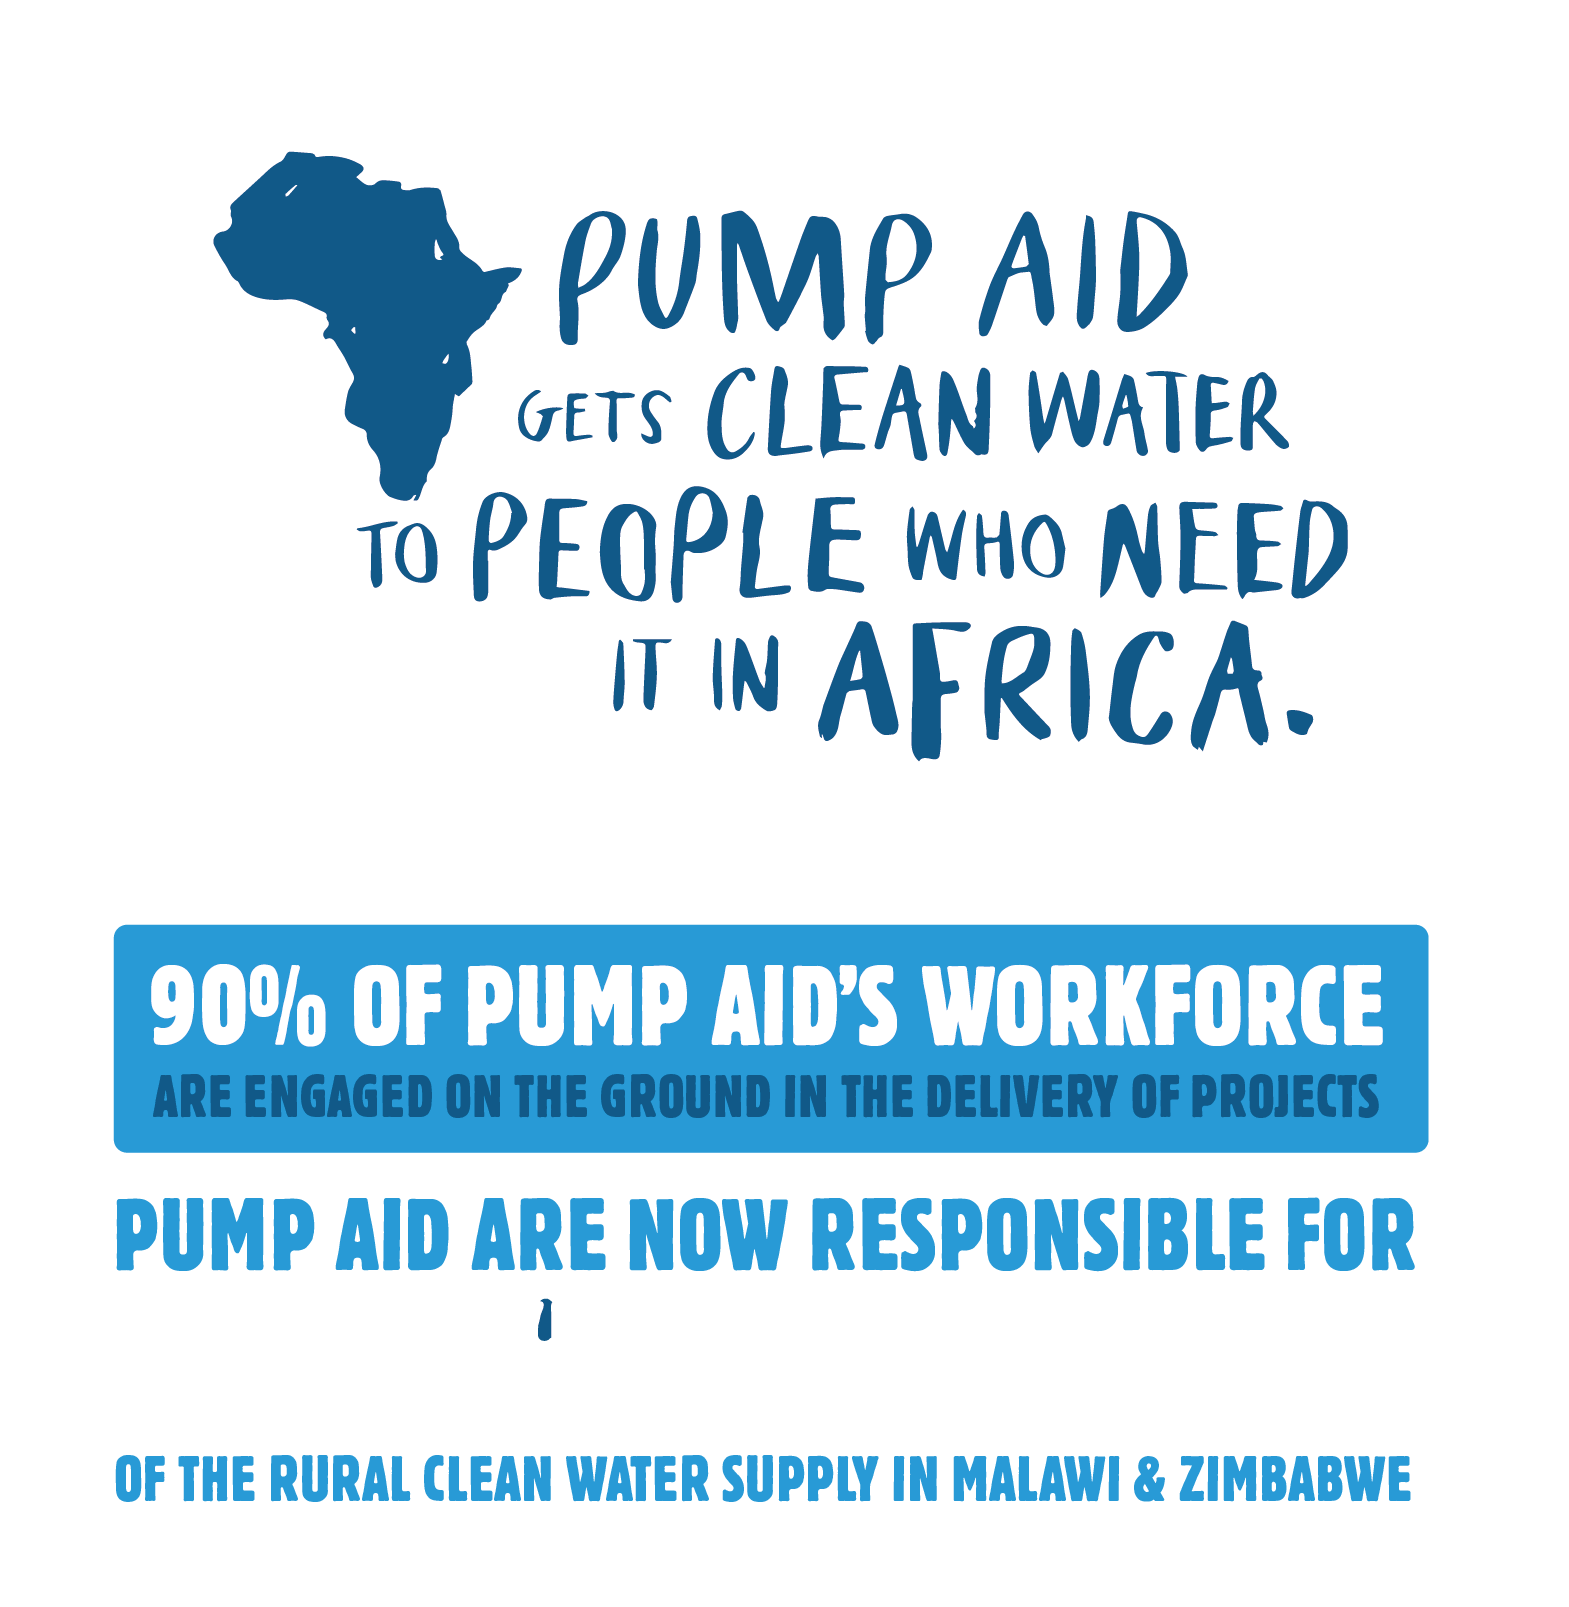 Pump Aid gets clean water to people who need it in Africa. 90% of Pump Aid's workforce are engaged on the ground in the delivery of projects. Pump Aid are now responsible for suppyling over 10% of the rural clean water supply in Malawi & Zimbabwe.